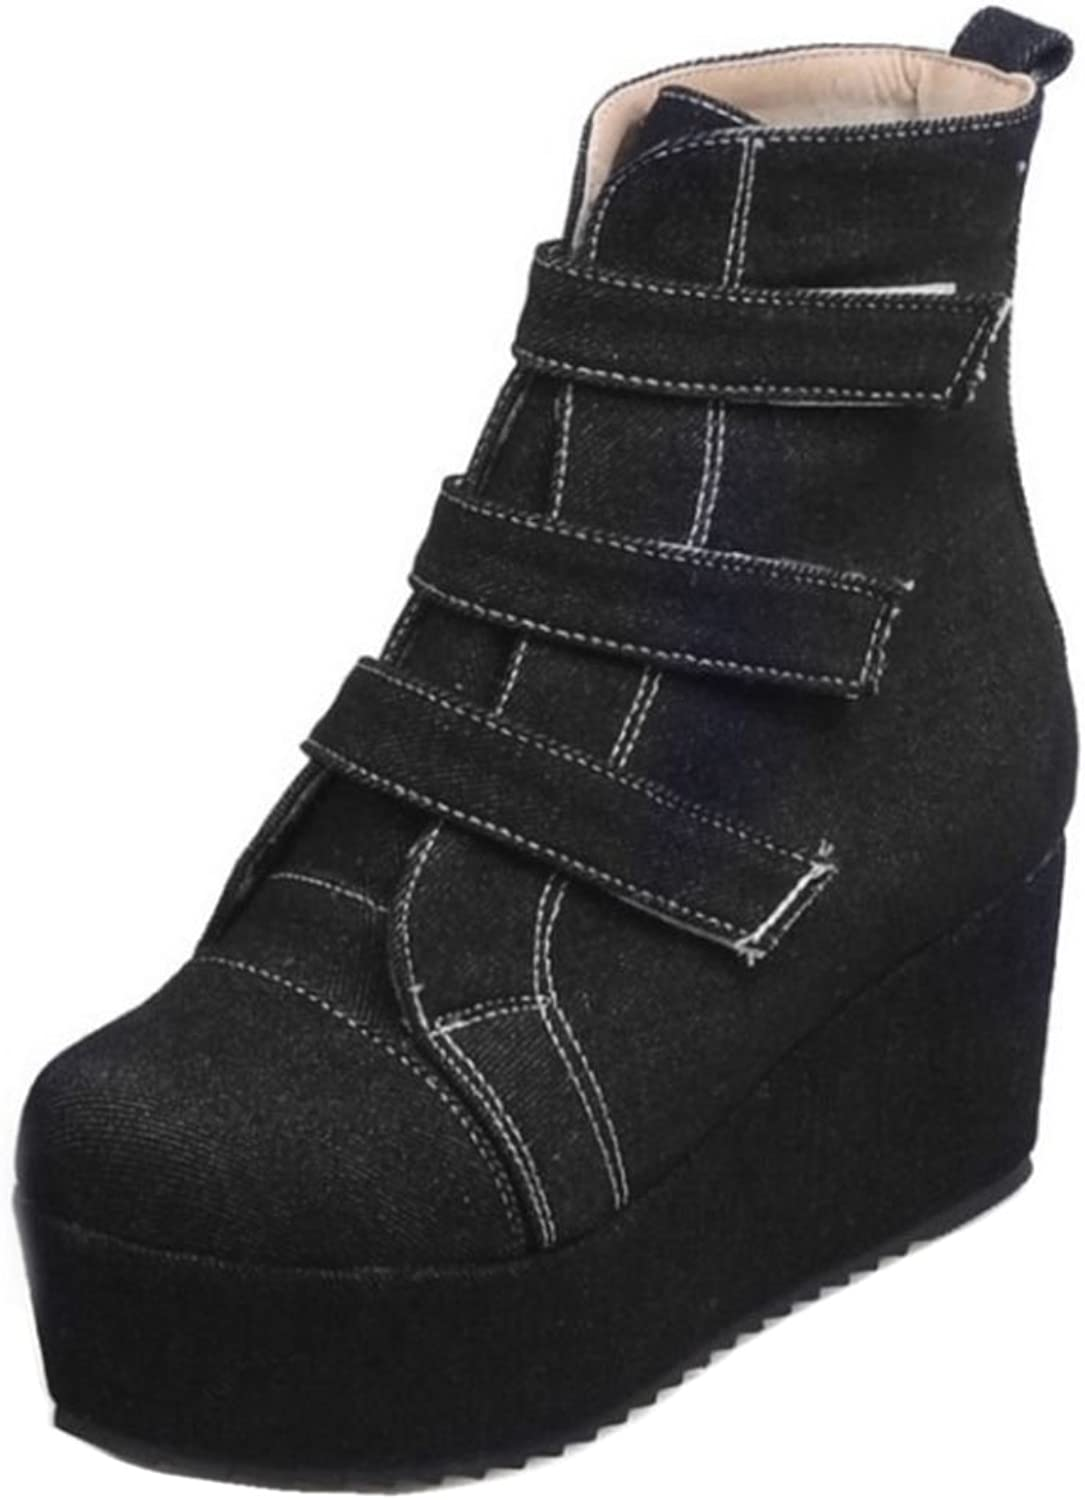 FizaiZifai Women Fashion Boots Velcro